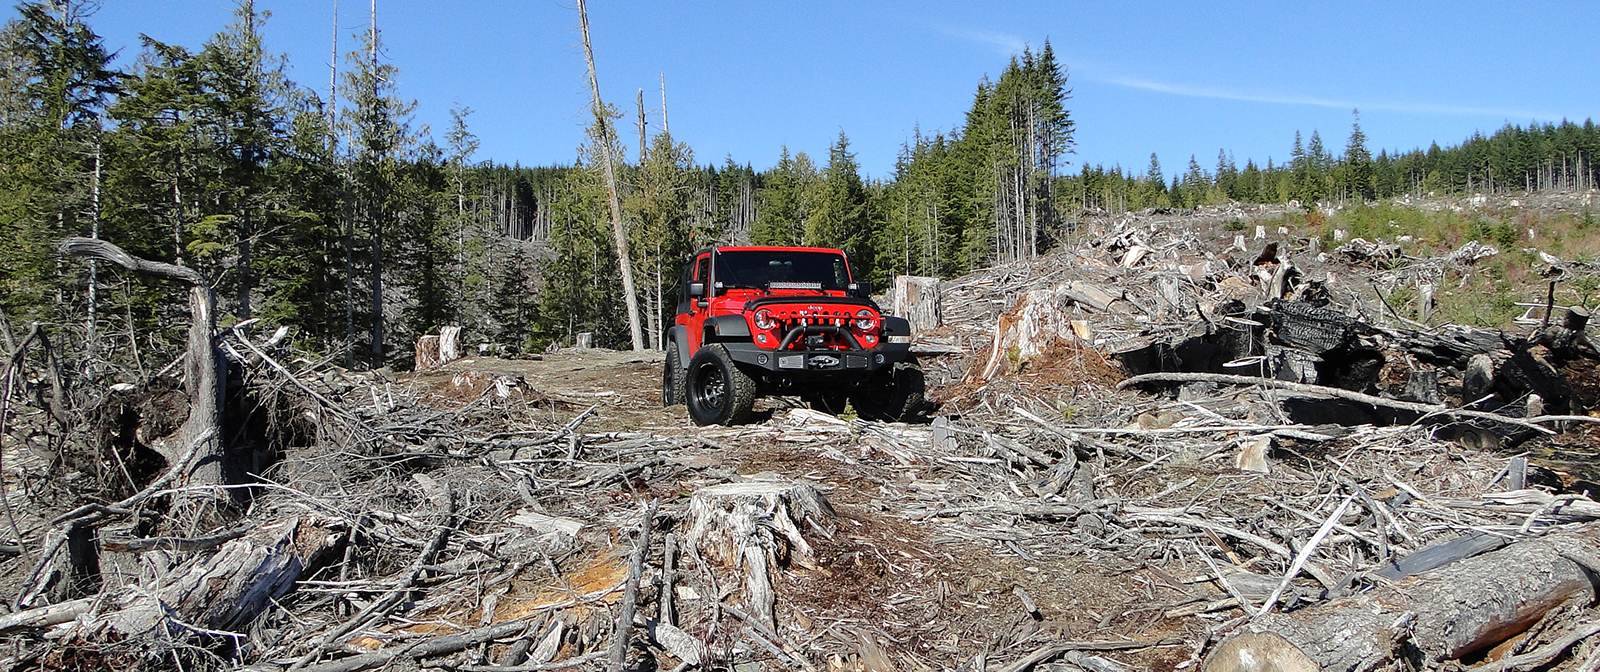 Wrangler JK Long Distance Trail Tools Yukon Canada